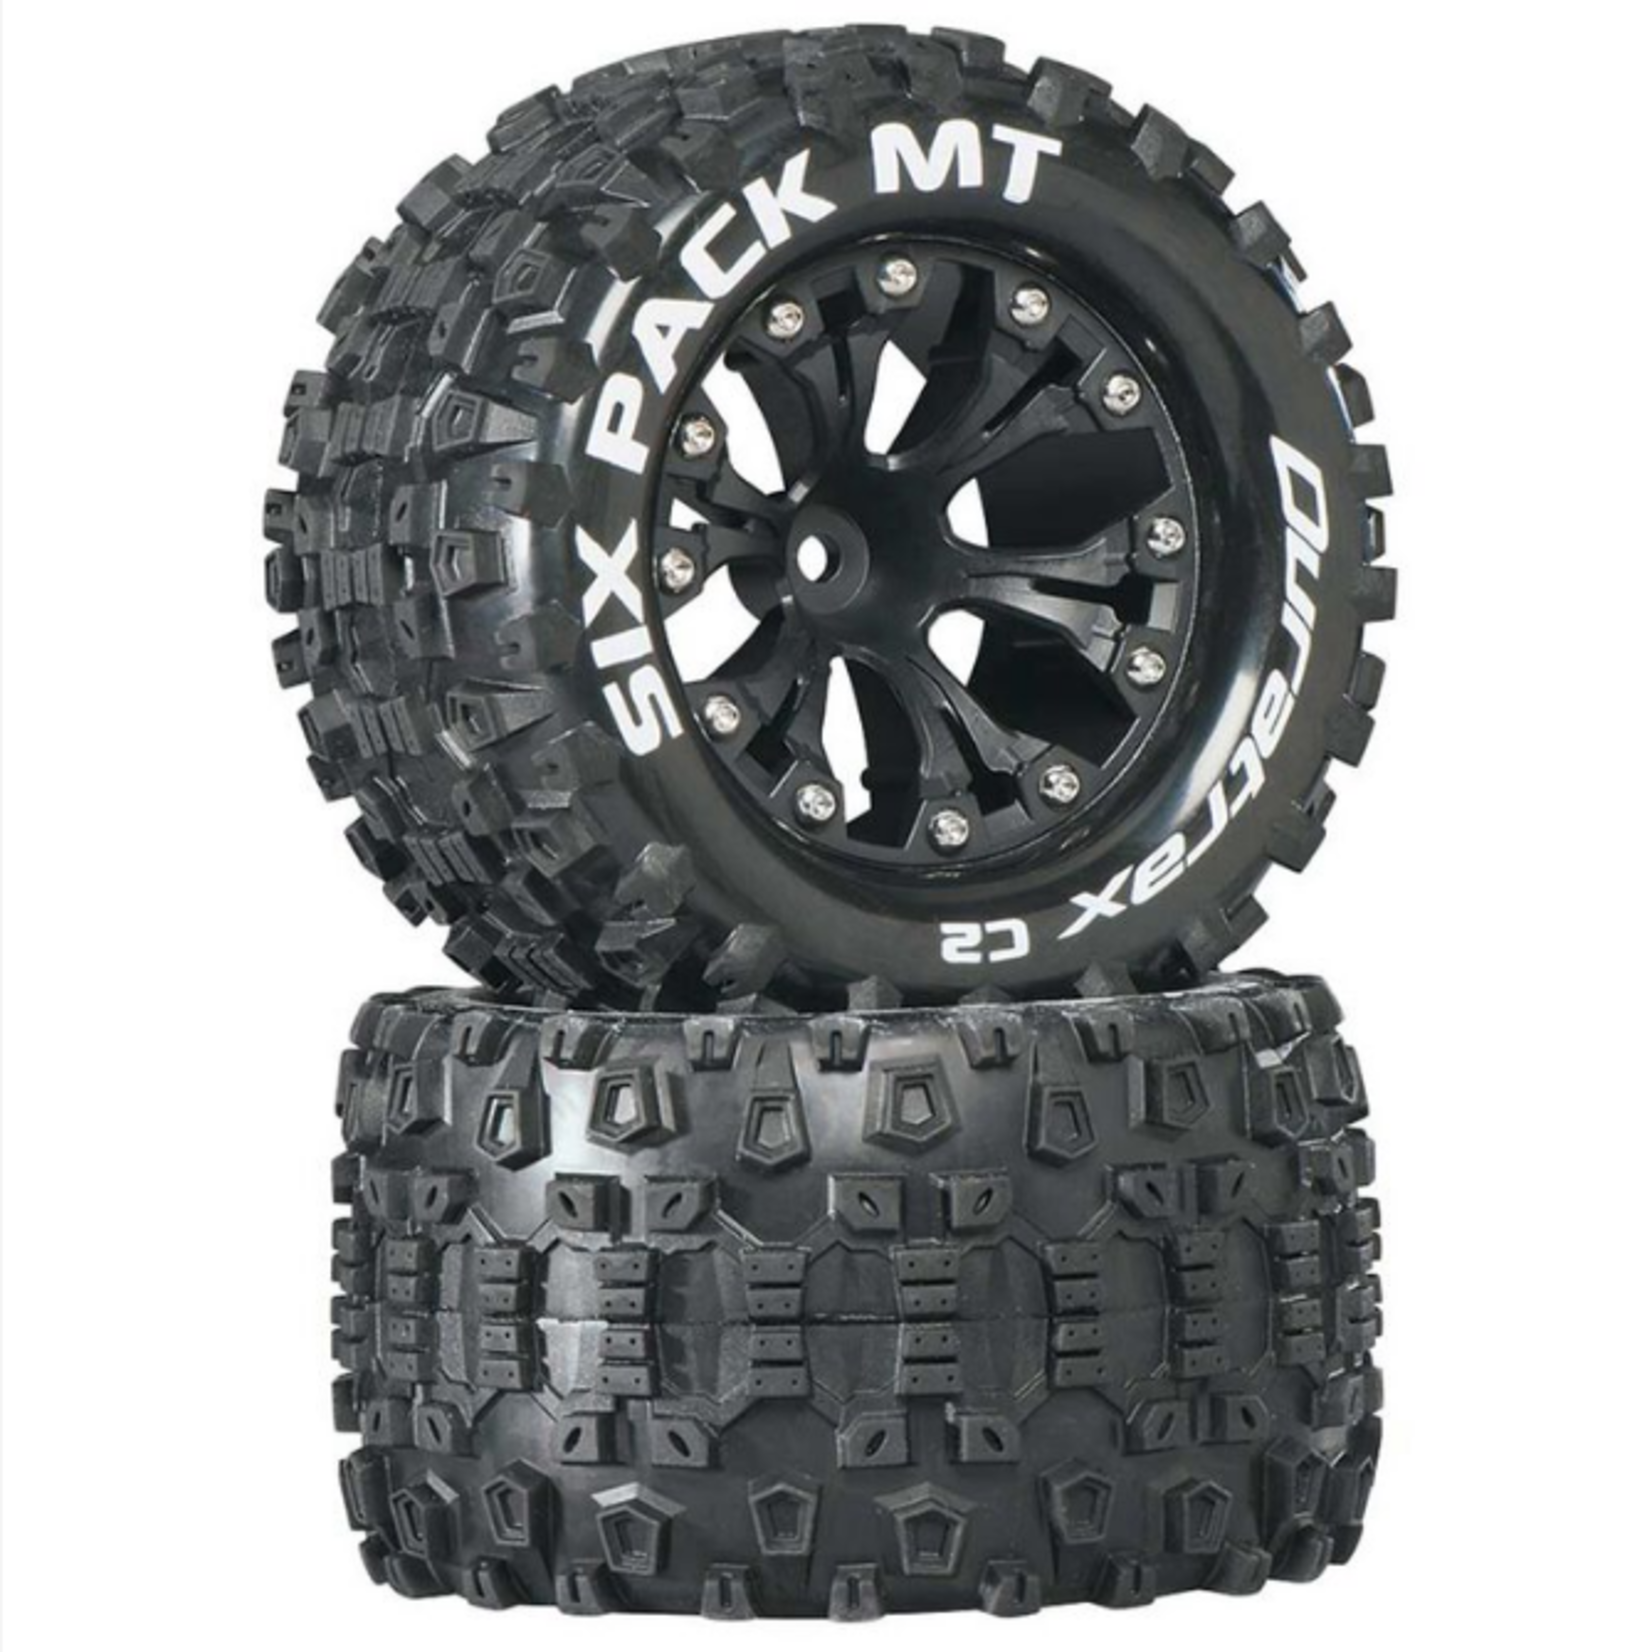 Duratrax DTXC3522 Duratrax Six-Pack MT 2.8'' 2WD Mounted 1/2'' Offset Tires, Black (2)